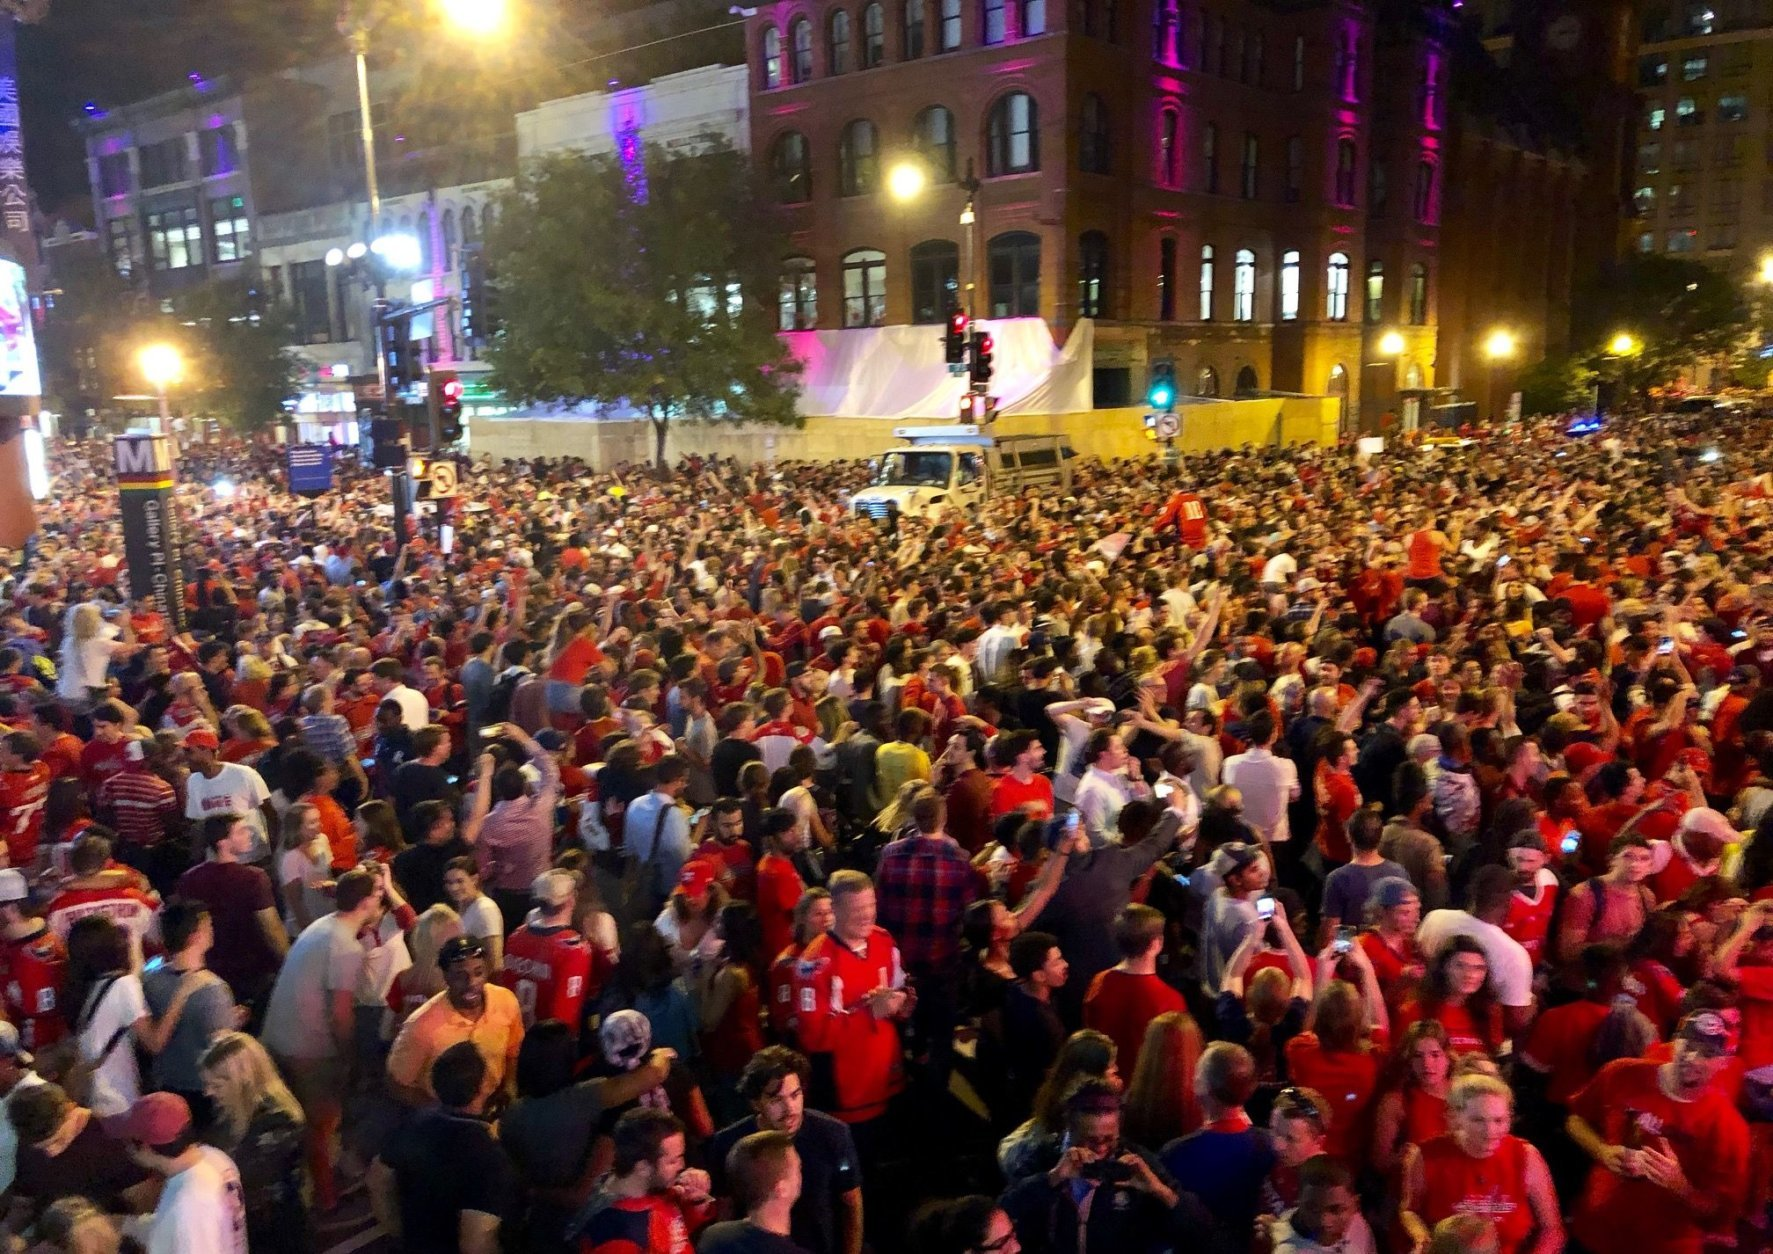 Crowds went wild in celebration after Thursday's game. (WTOP/Dave Dildine)